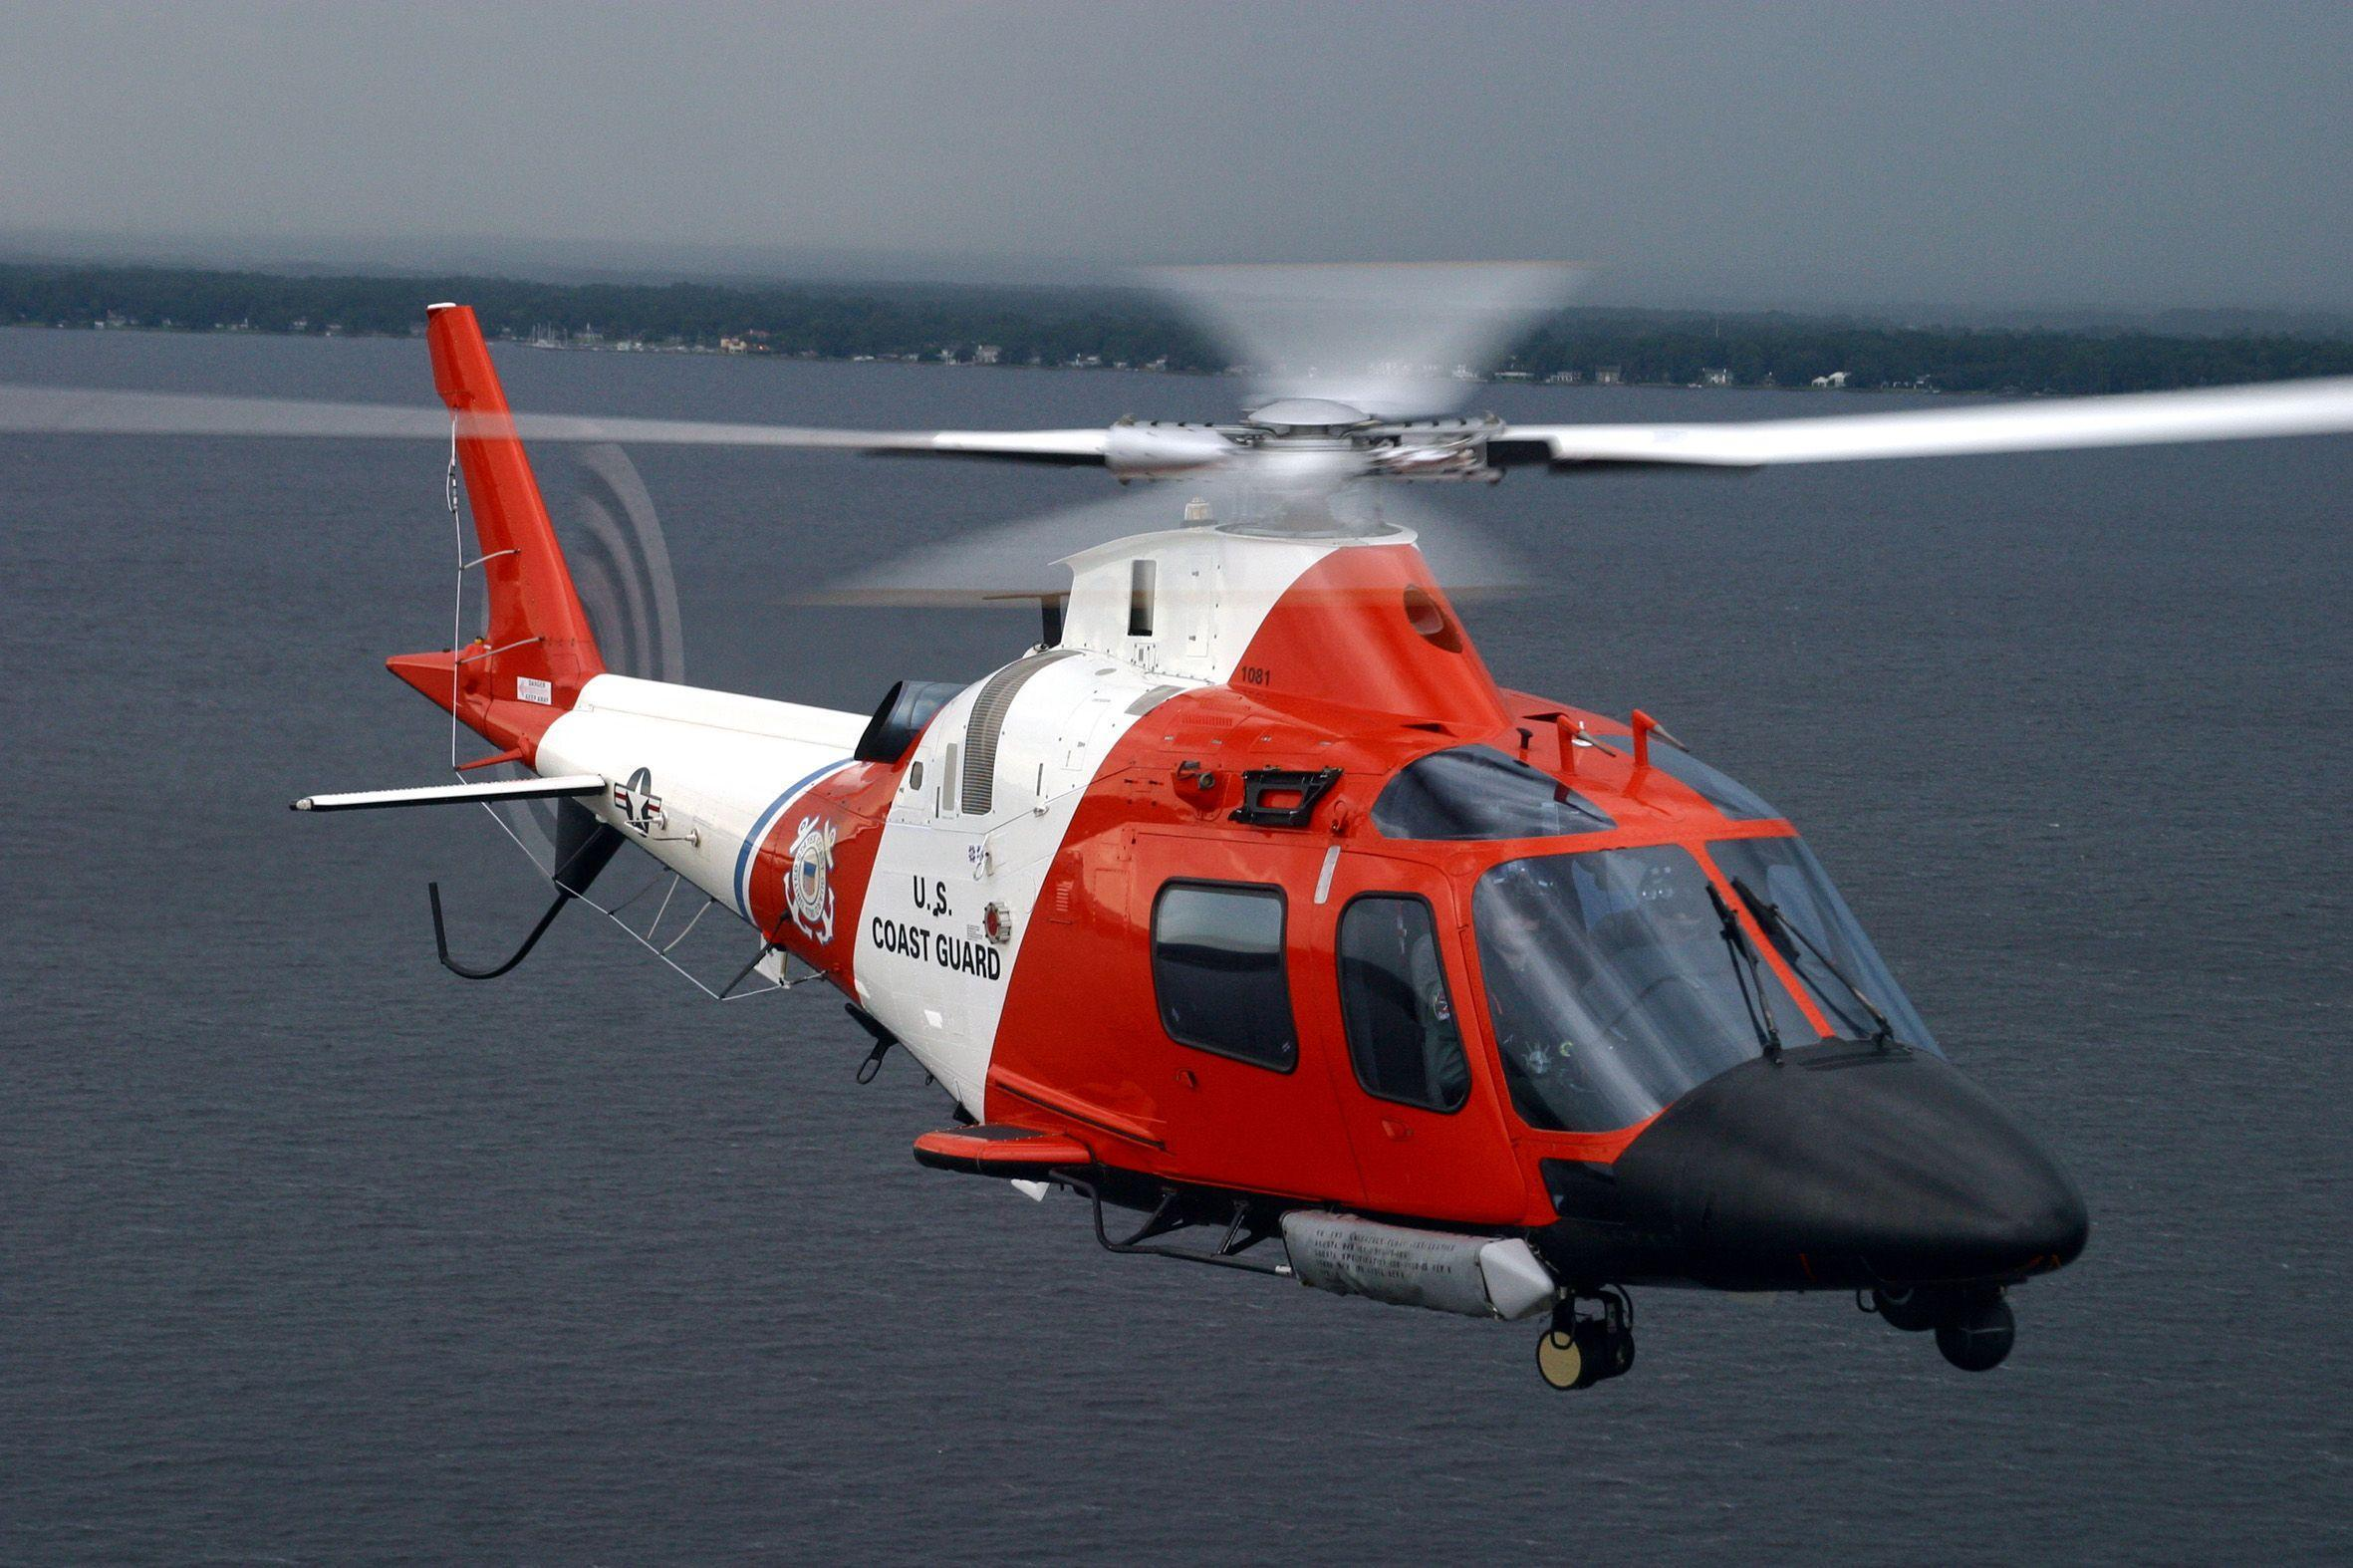 Image For > Coast Guard Helicopter Wallpapers